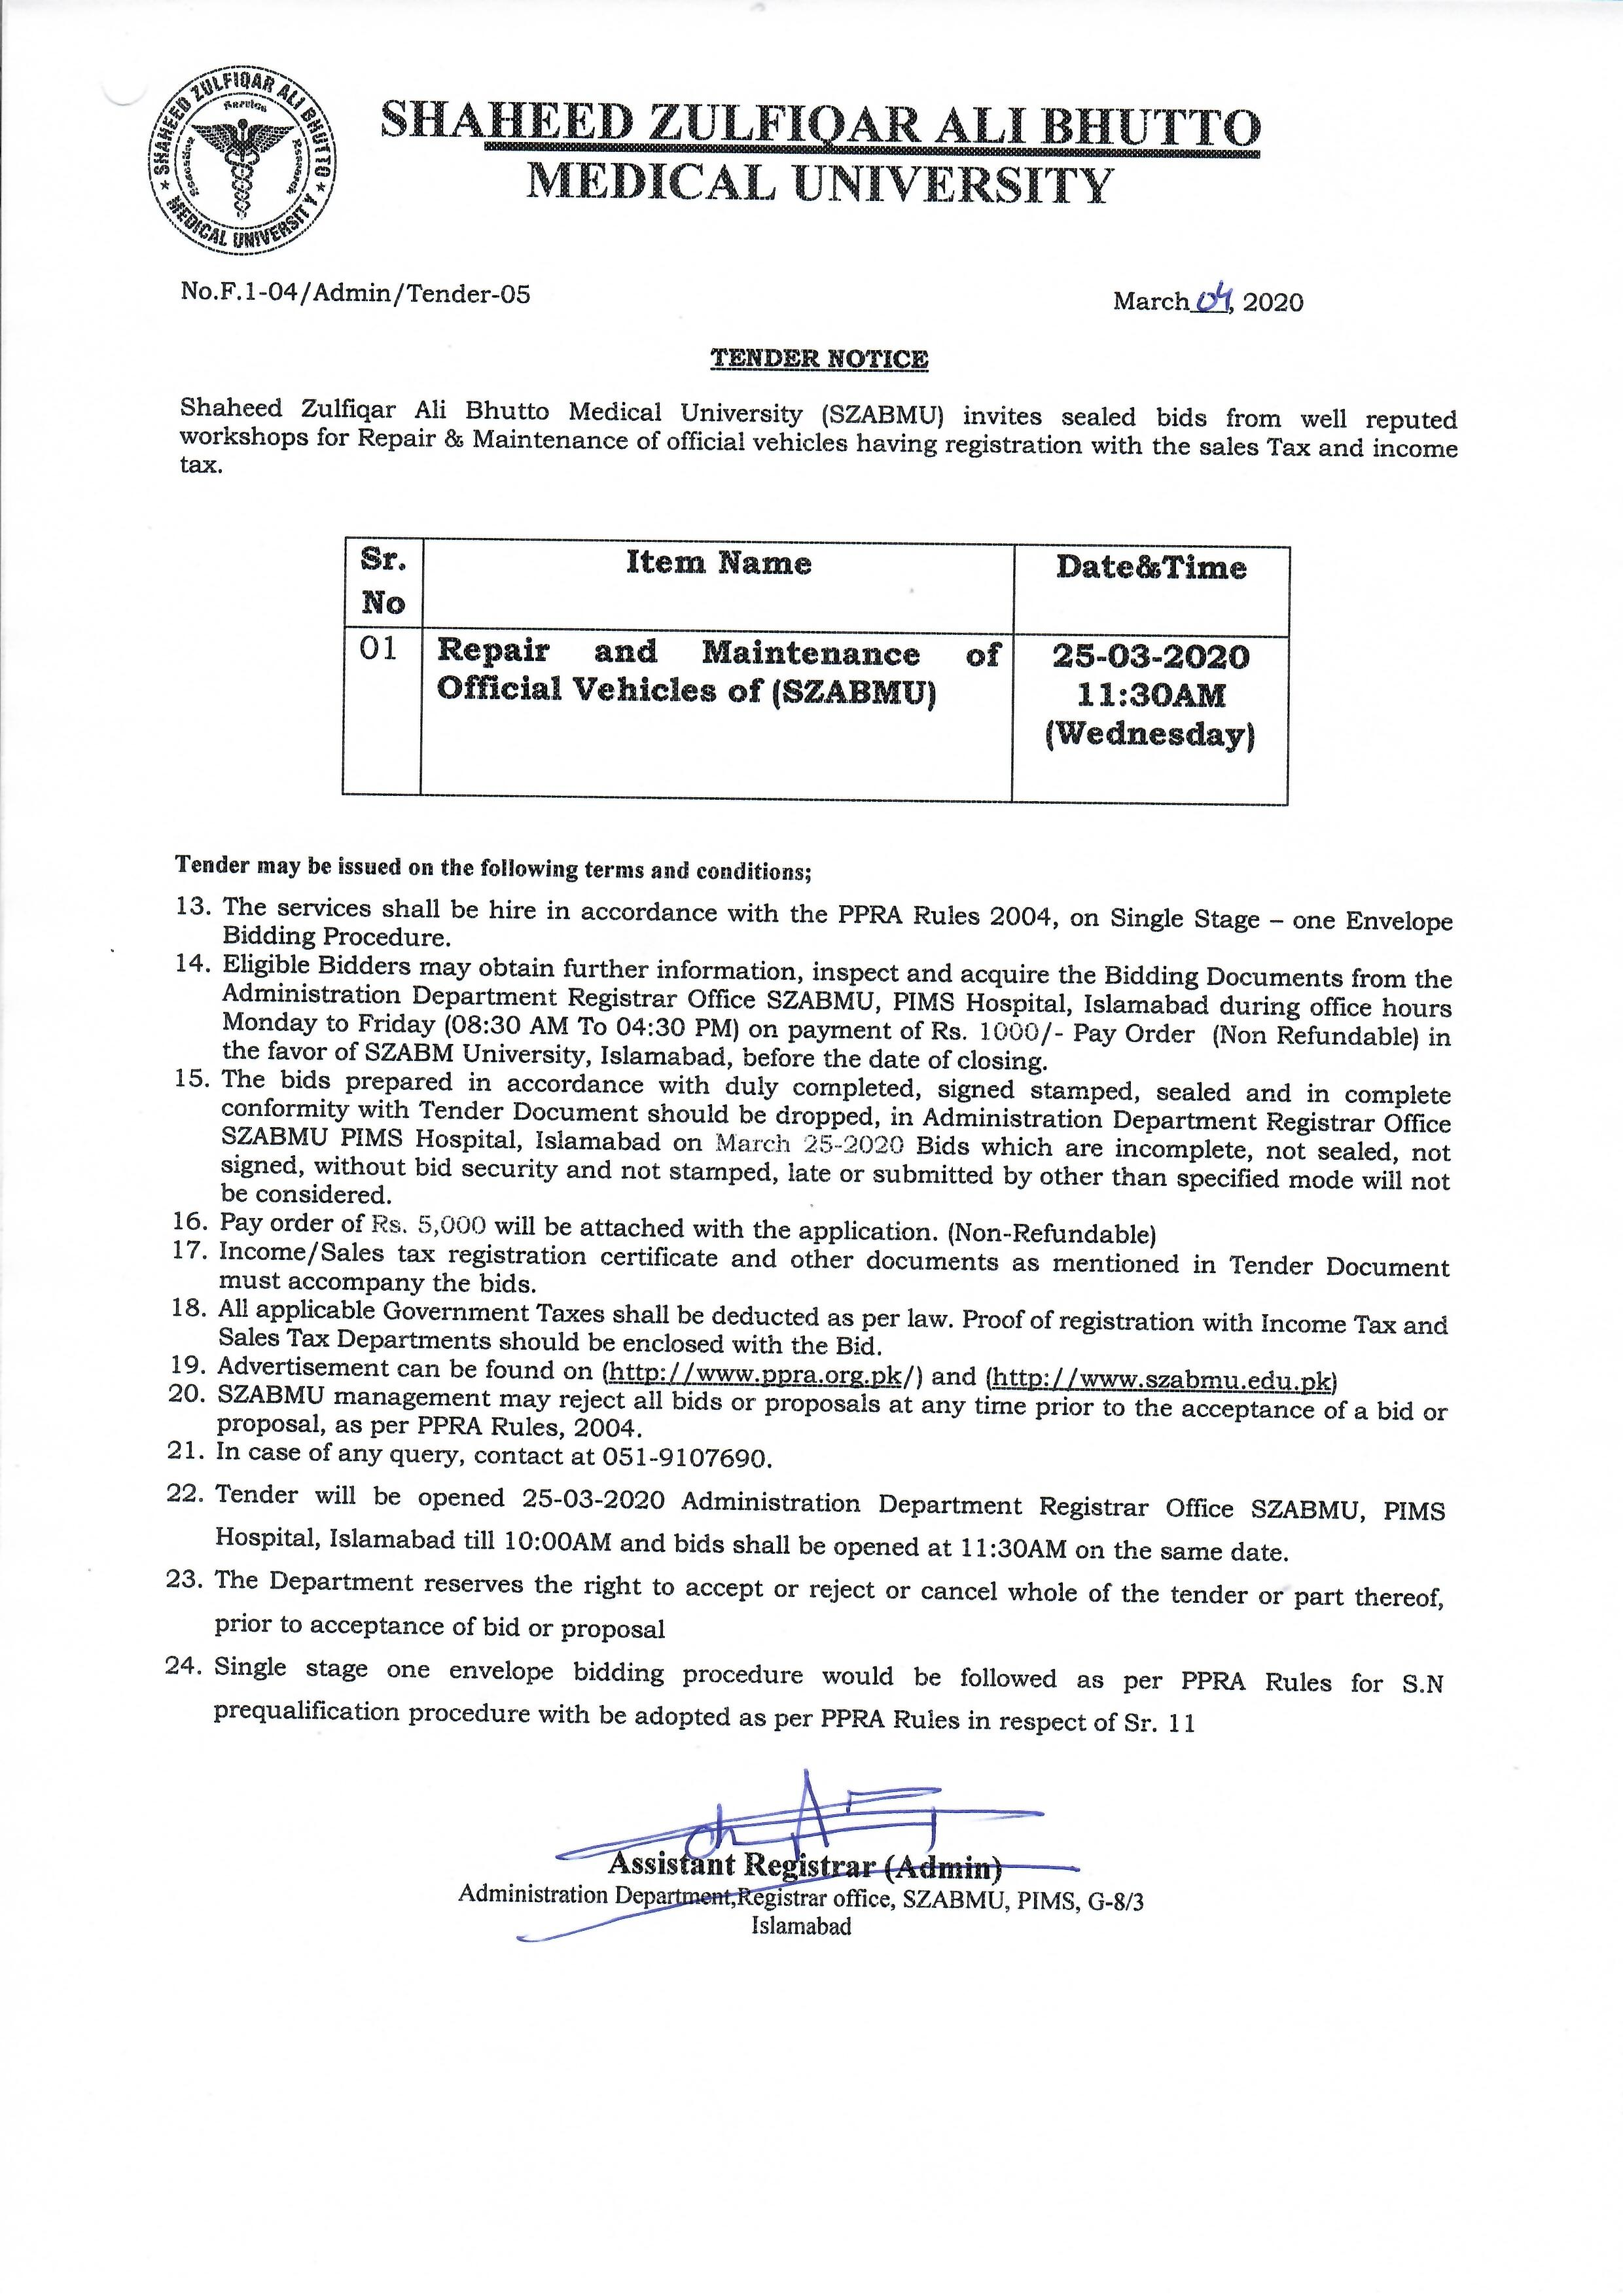 Tender Notice - Repair and Maintenance of Official Vehicles